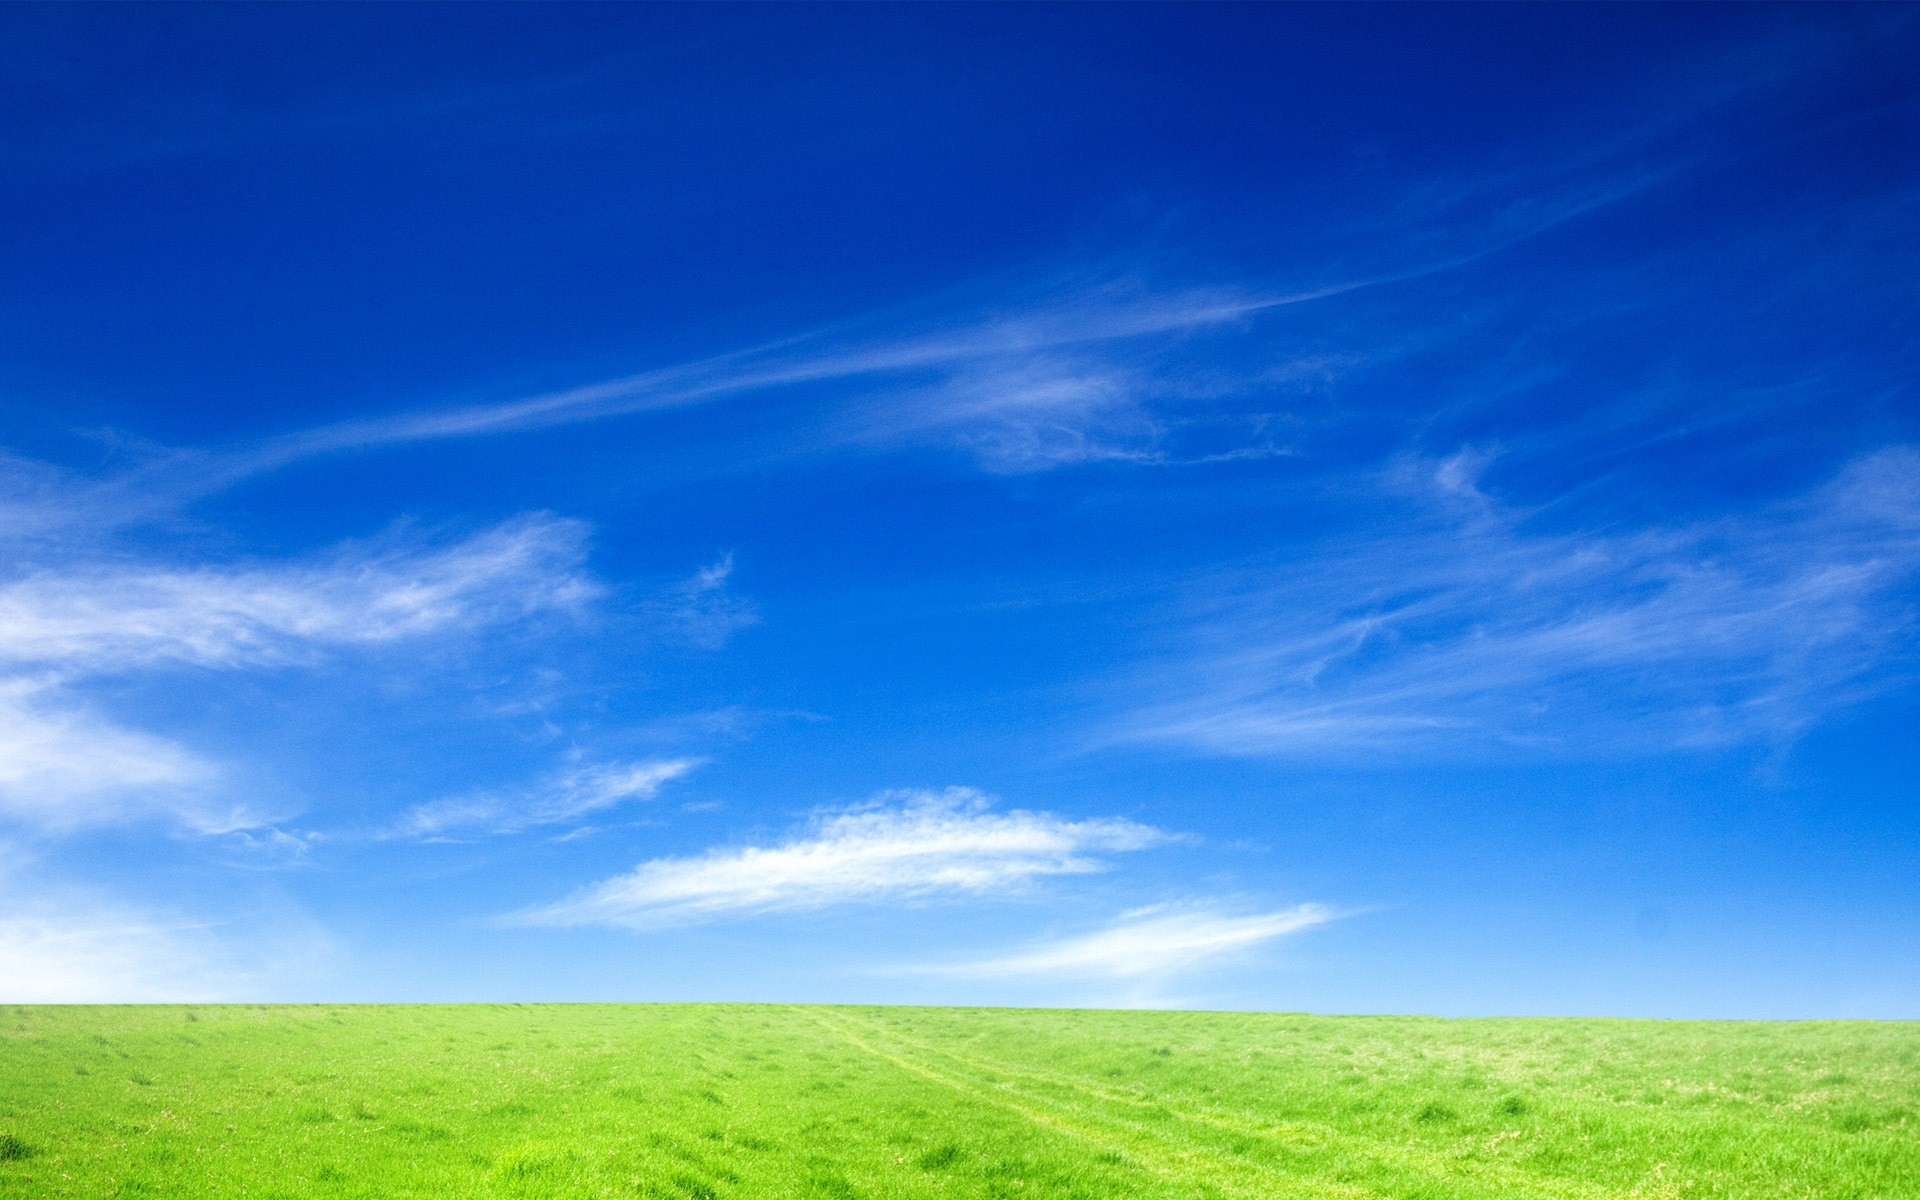 1920x1200 File Name 754474 Awesome Blue Sky Pictures Blue Sky Wallpapers